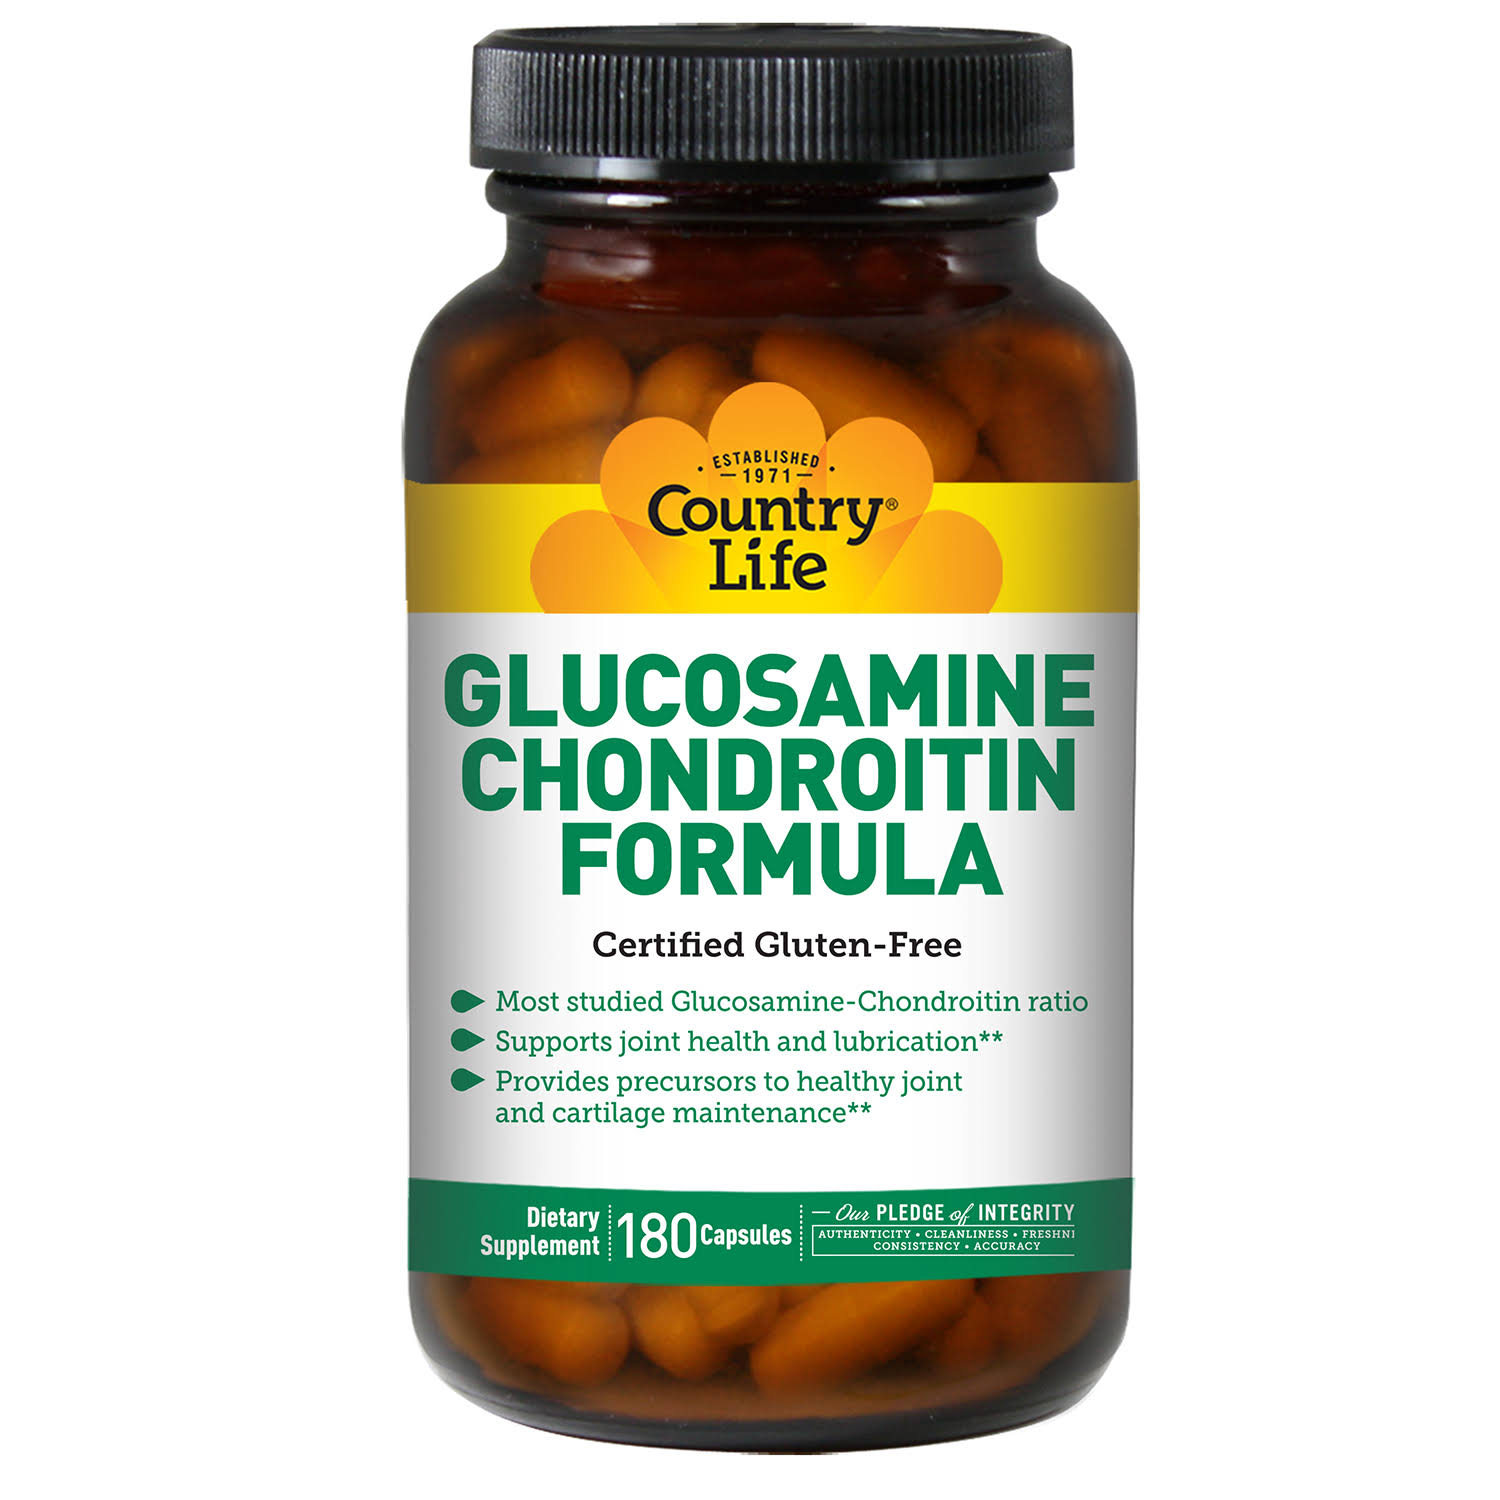 Country Life Glucosamine Chondroitin Formula Supplement - 180 Capsules